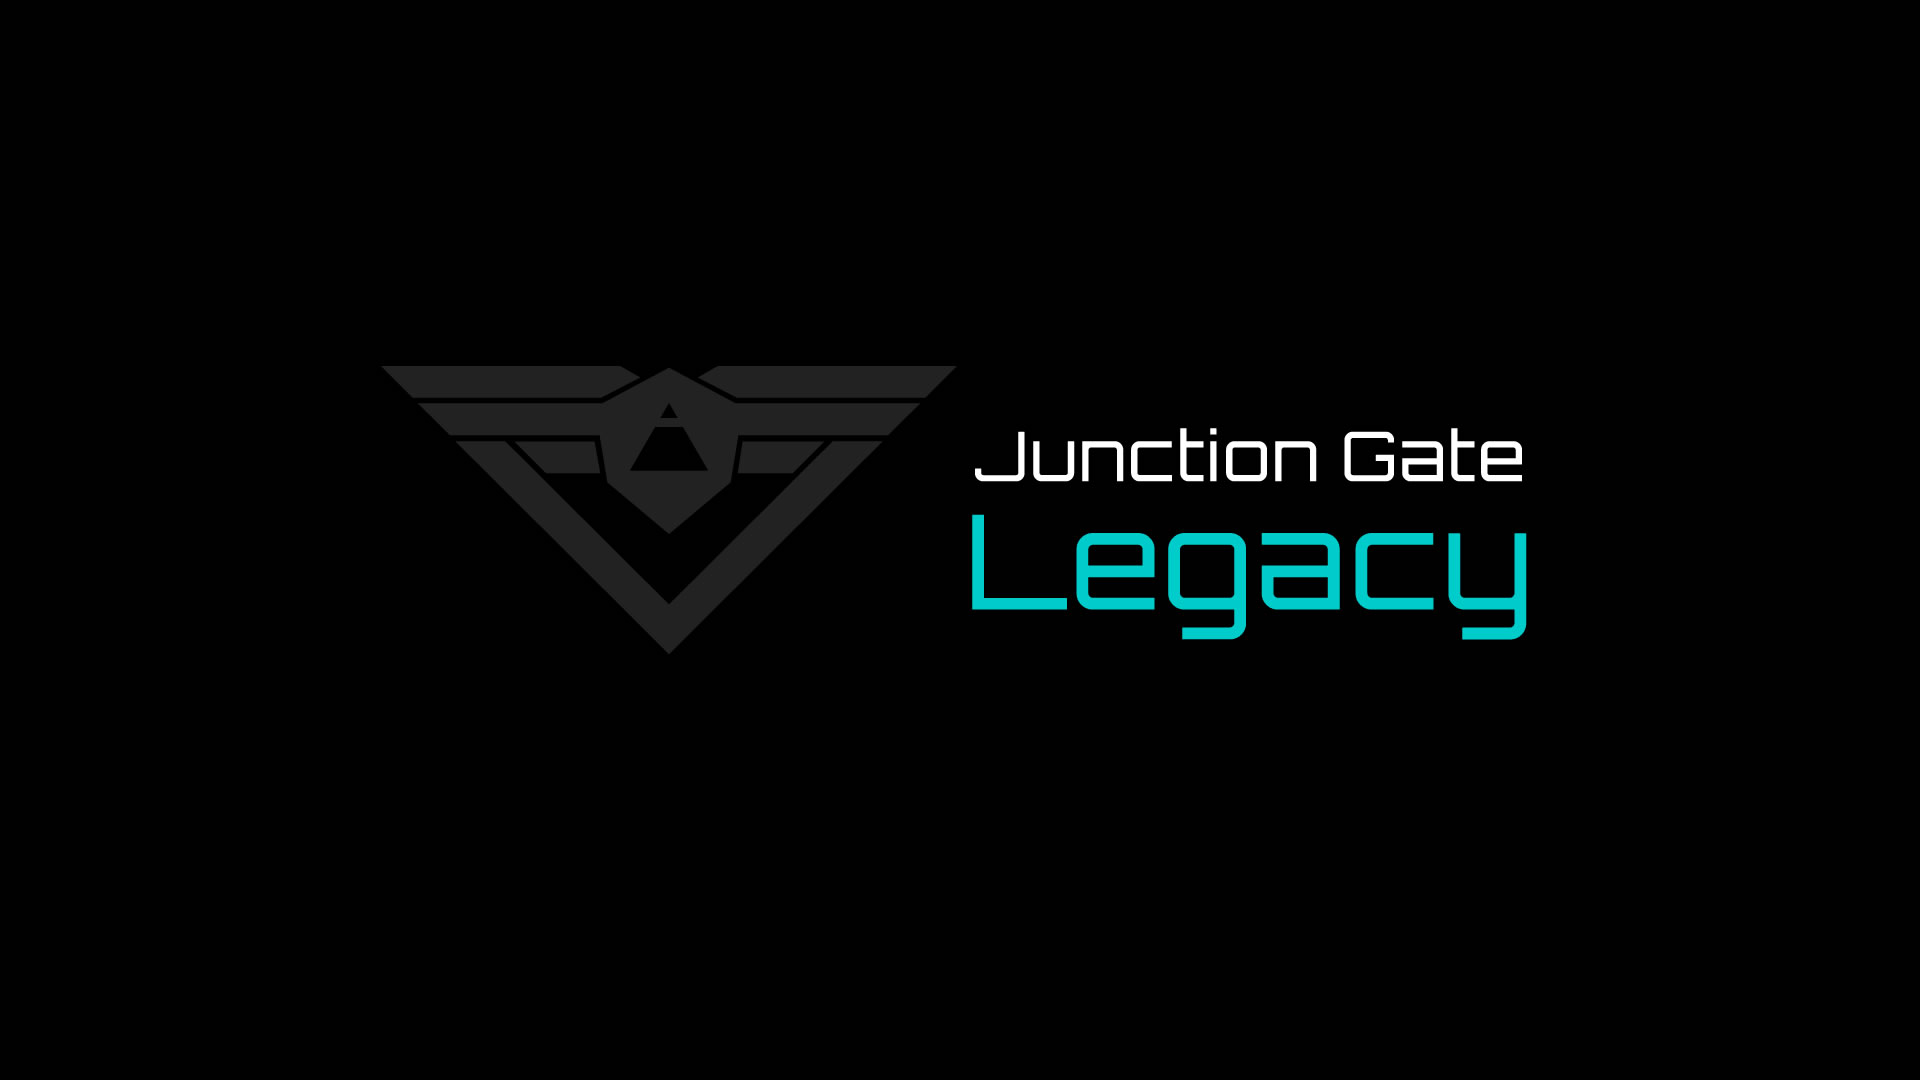 Junction Gate Legacy